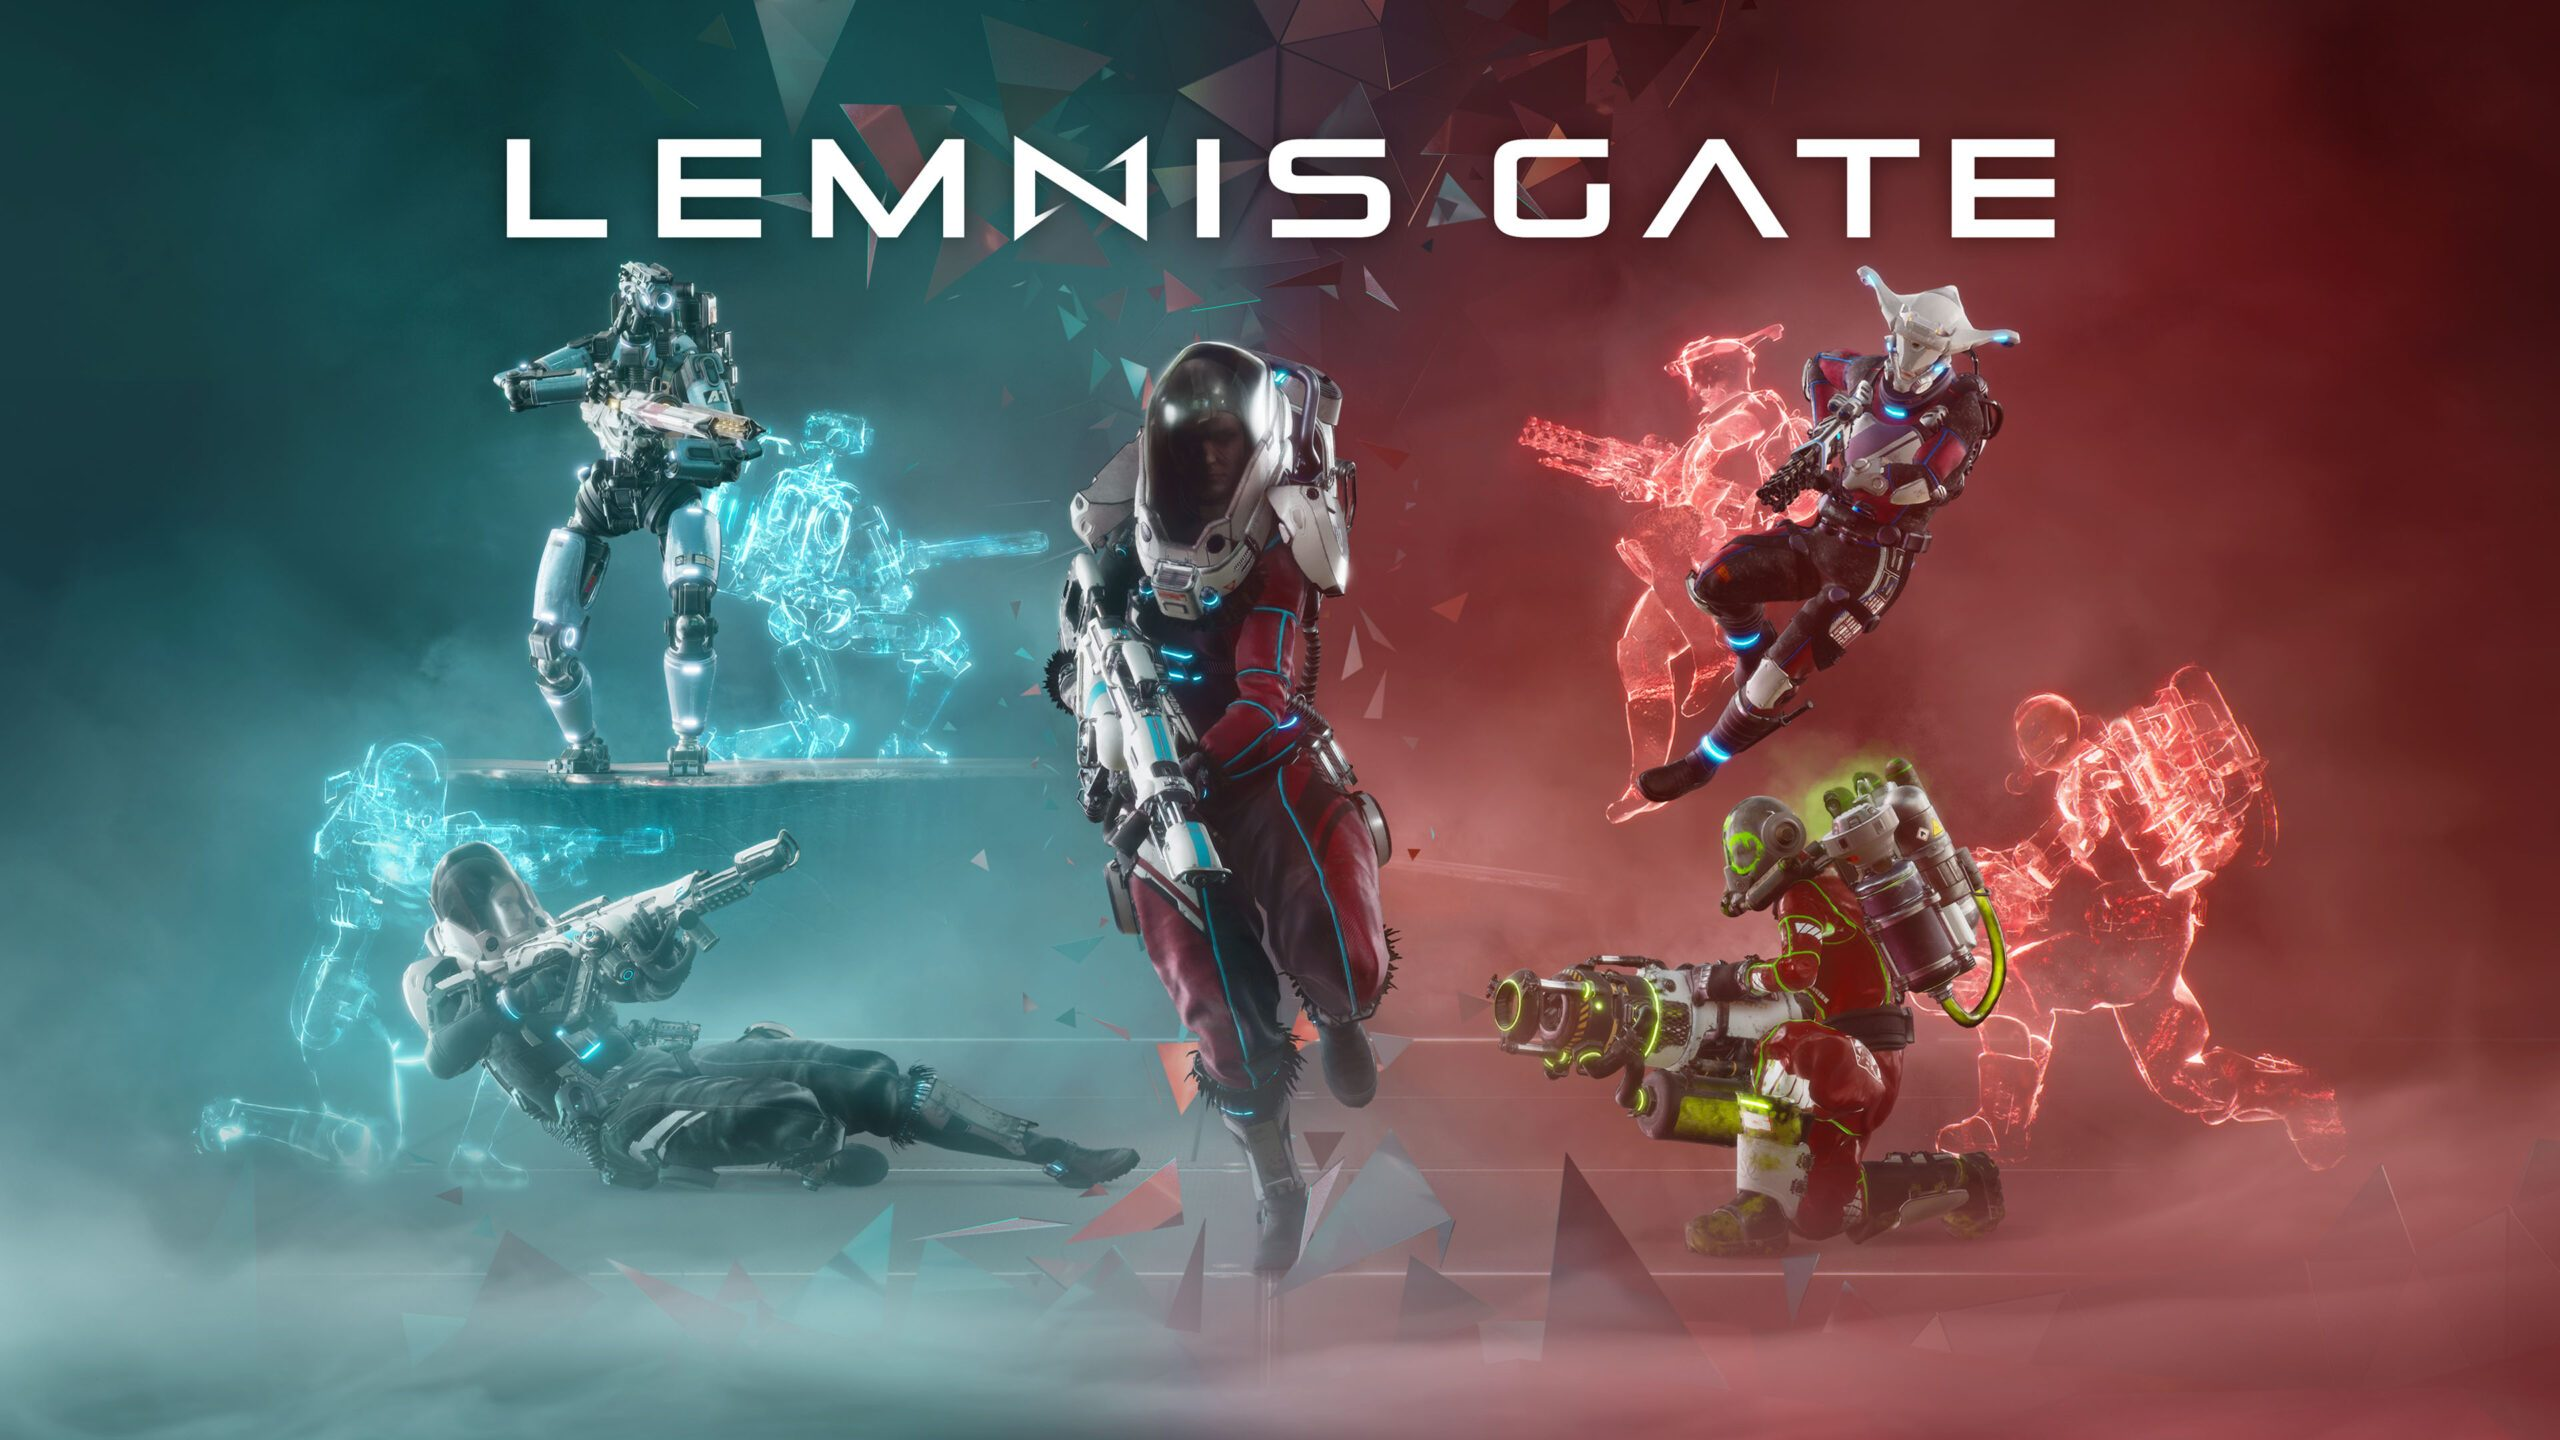 lemnis-gate:-fusing-tactical-time-travel-with-strategic-shooting